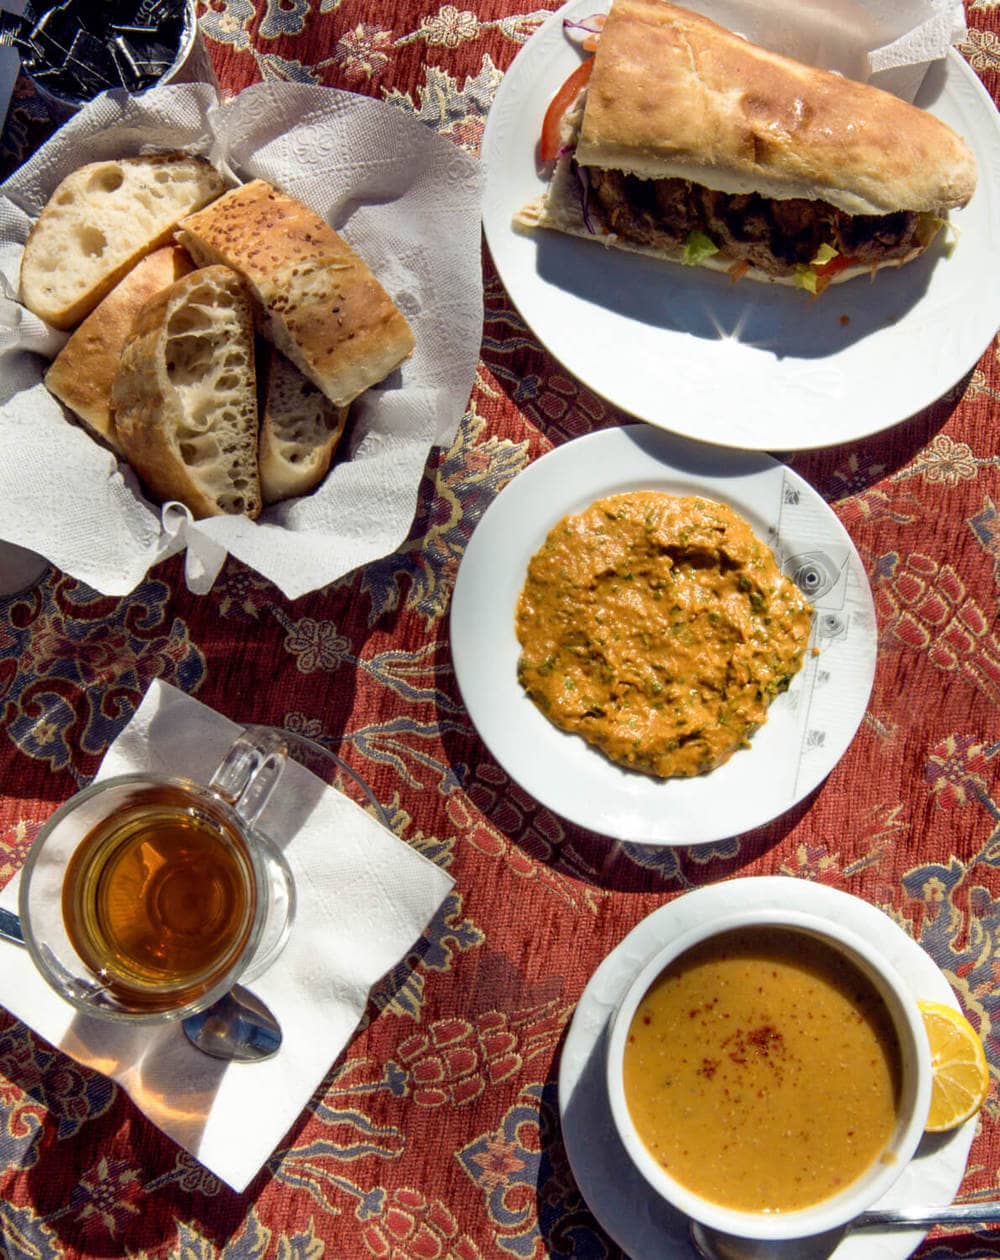 Cafe Safak // Where to eat in Goreme, Turkey // A list of 7 Cappadocia restaurants to check out, including where to find the most authentic pottery kebab, the prettiest patio to sip Turkish Tea, and where to get the best food.